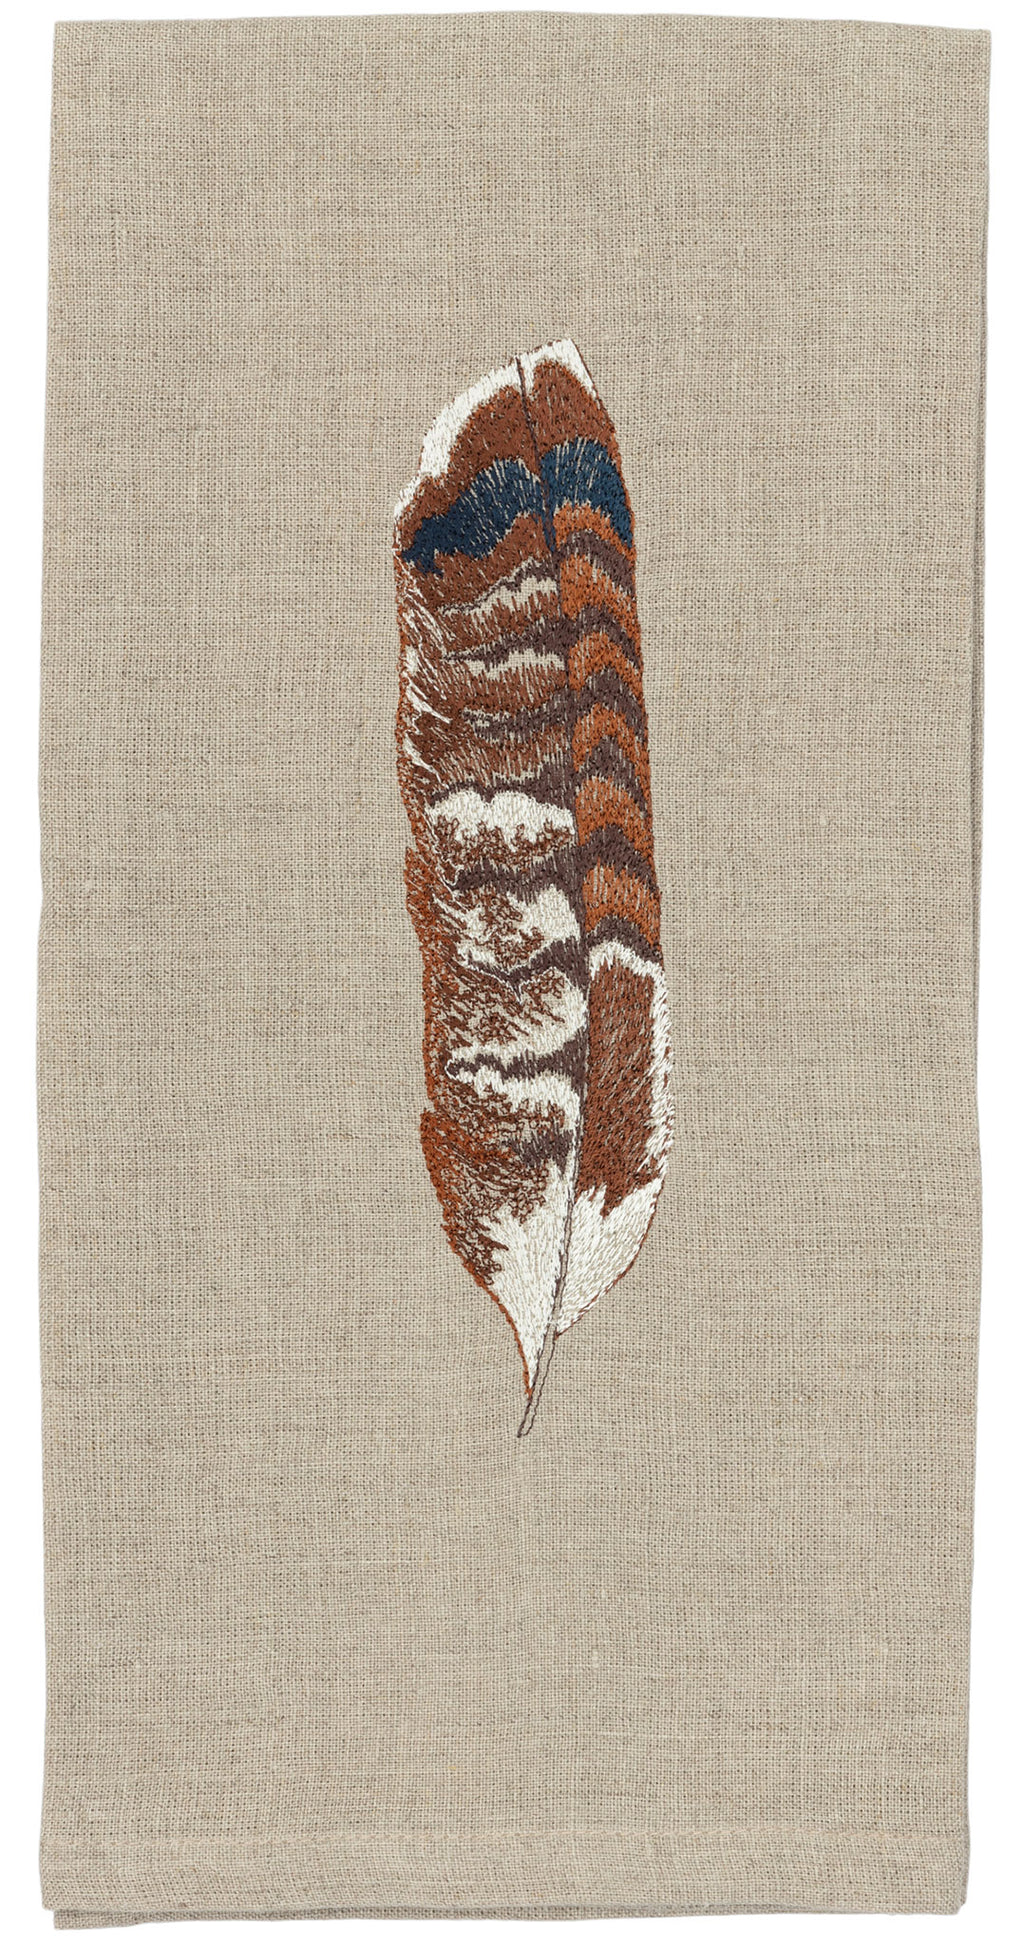 Red Tail Hawk Feather Tea Towel